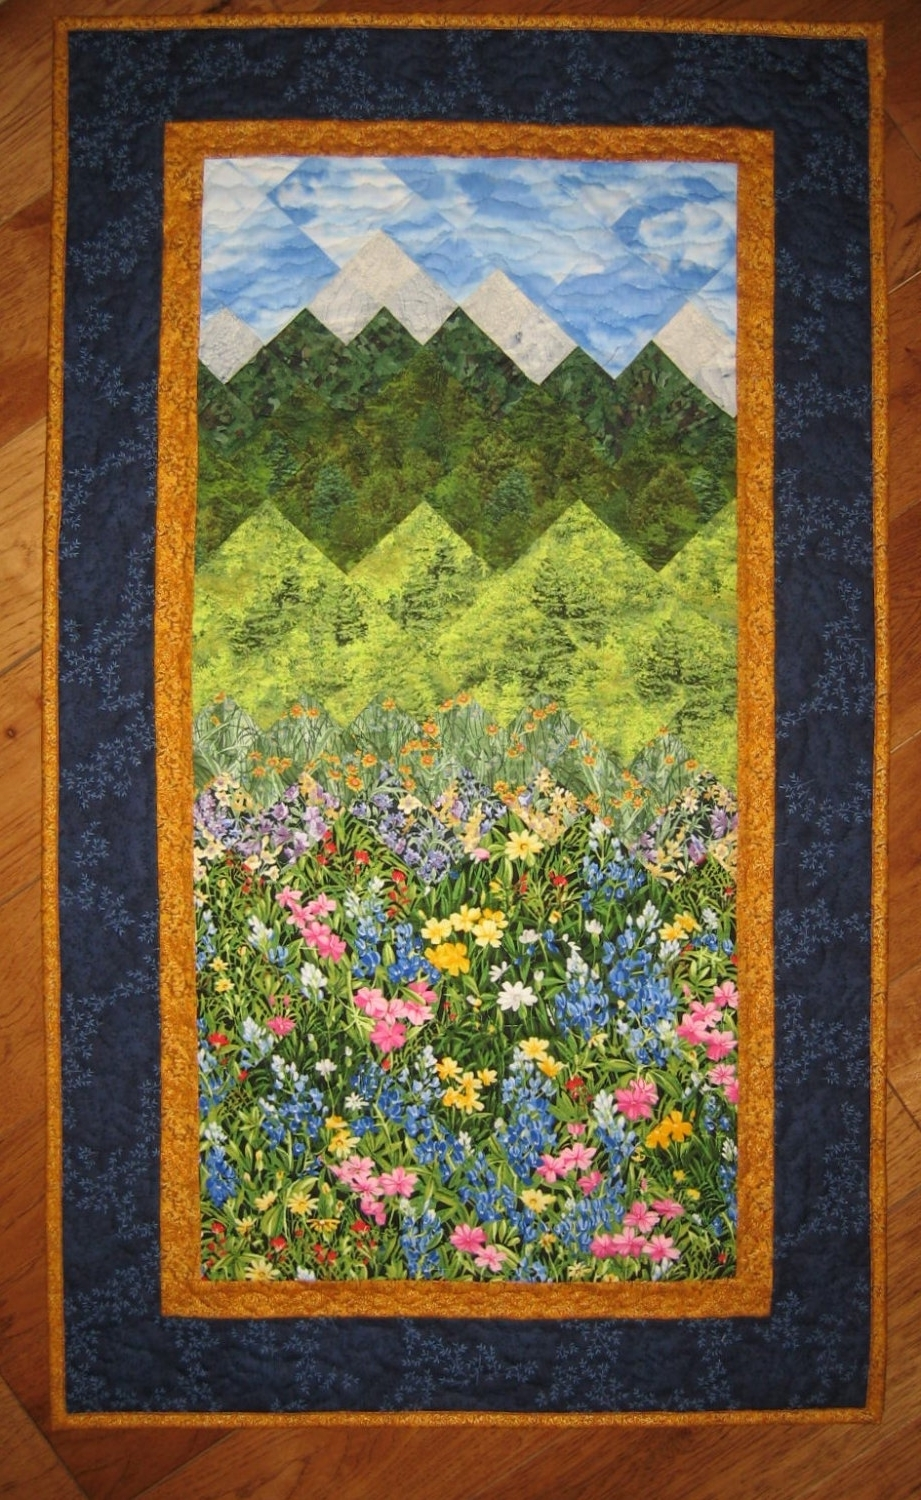 Quilt Fabric Wall Art Pertaining To Fashionable Summer Flowers And Mountains Art Quilt Fabric Wall Hanging Quilted (Gallery 2 of 15)